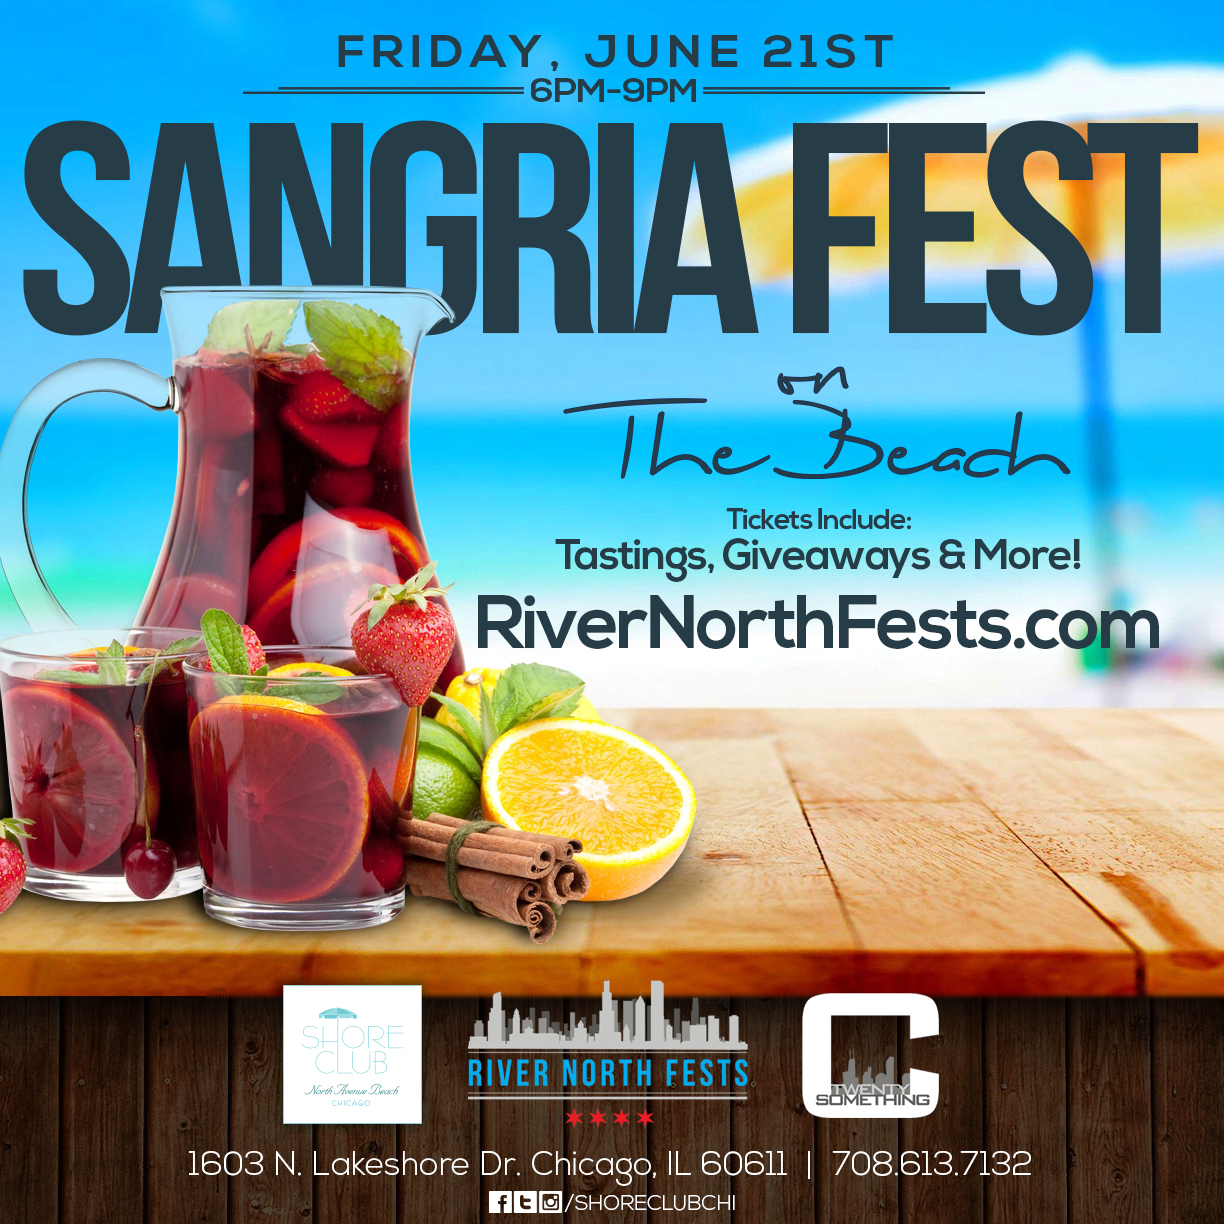 Sangria Fest on the Beach Tasting Party - Tickets include sangria tastings, giveaways & MORE! We will have a variety of different sangrias available for sampling!